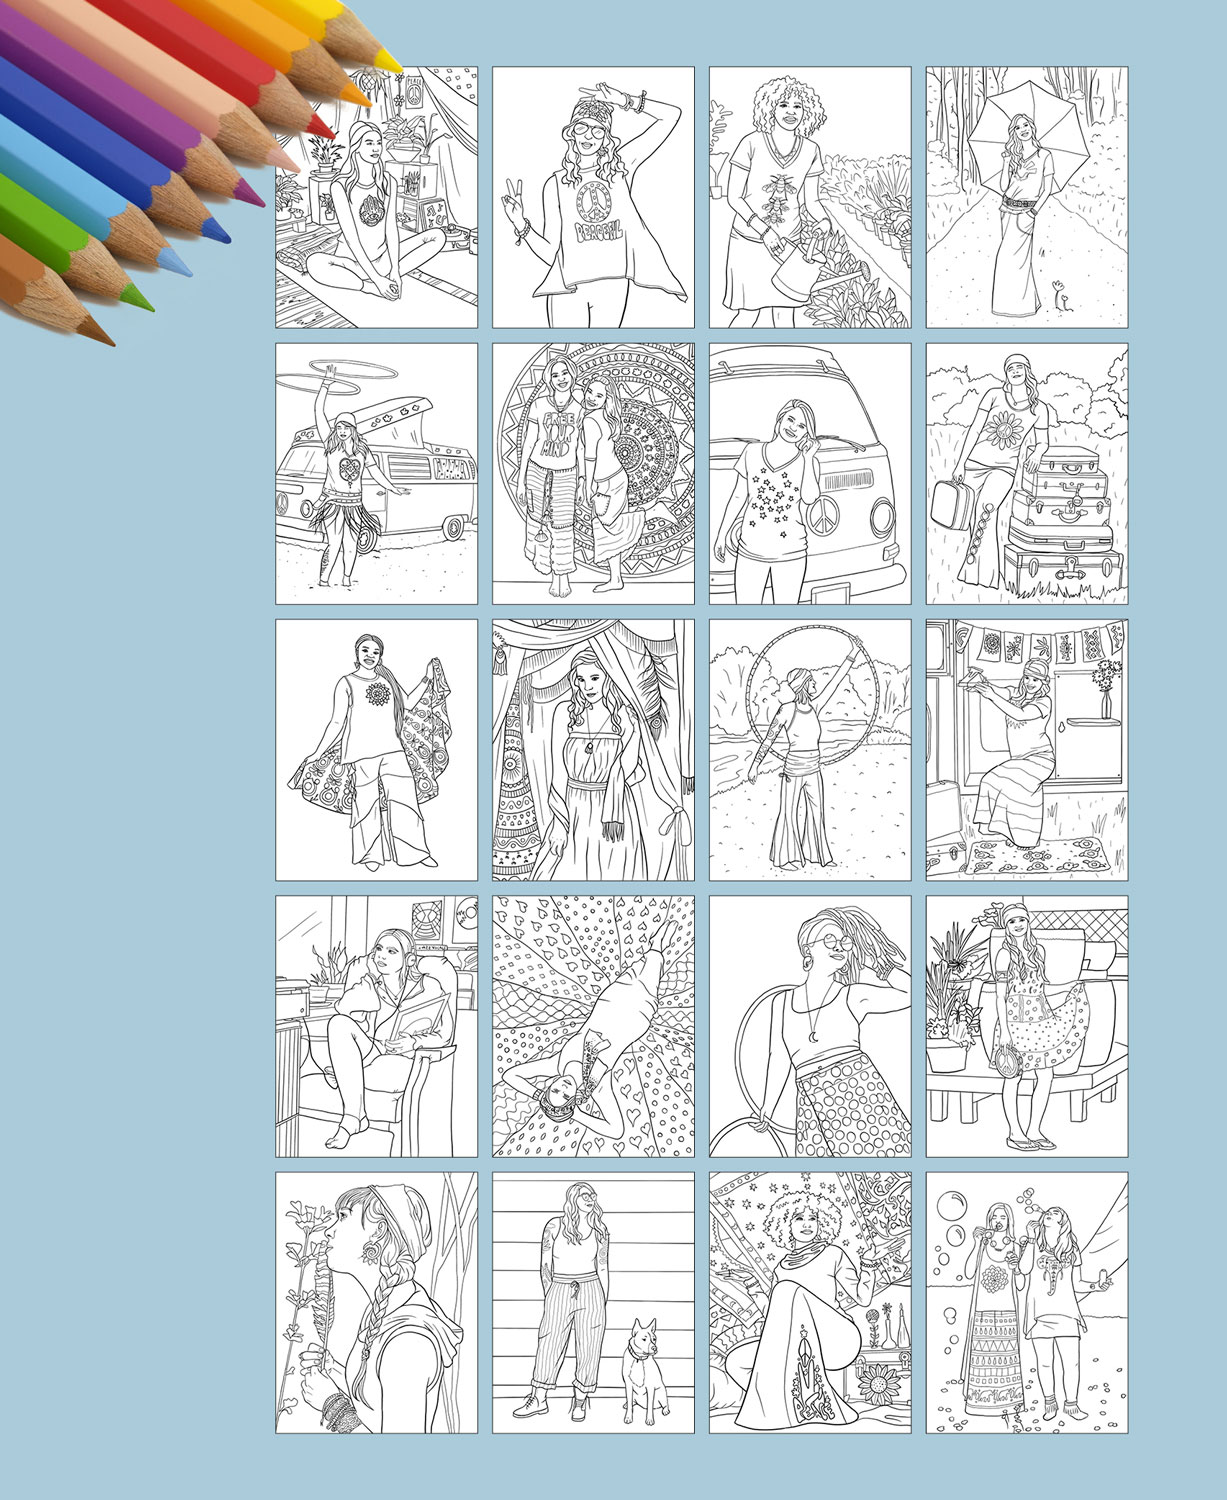 Hippie Art Worksheets | Printable Worksheets and Activities for ... | 1500x1227